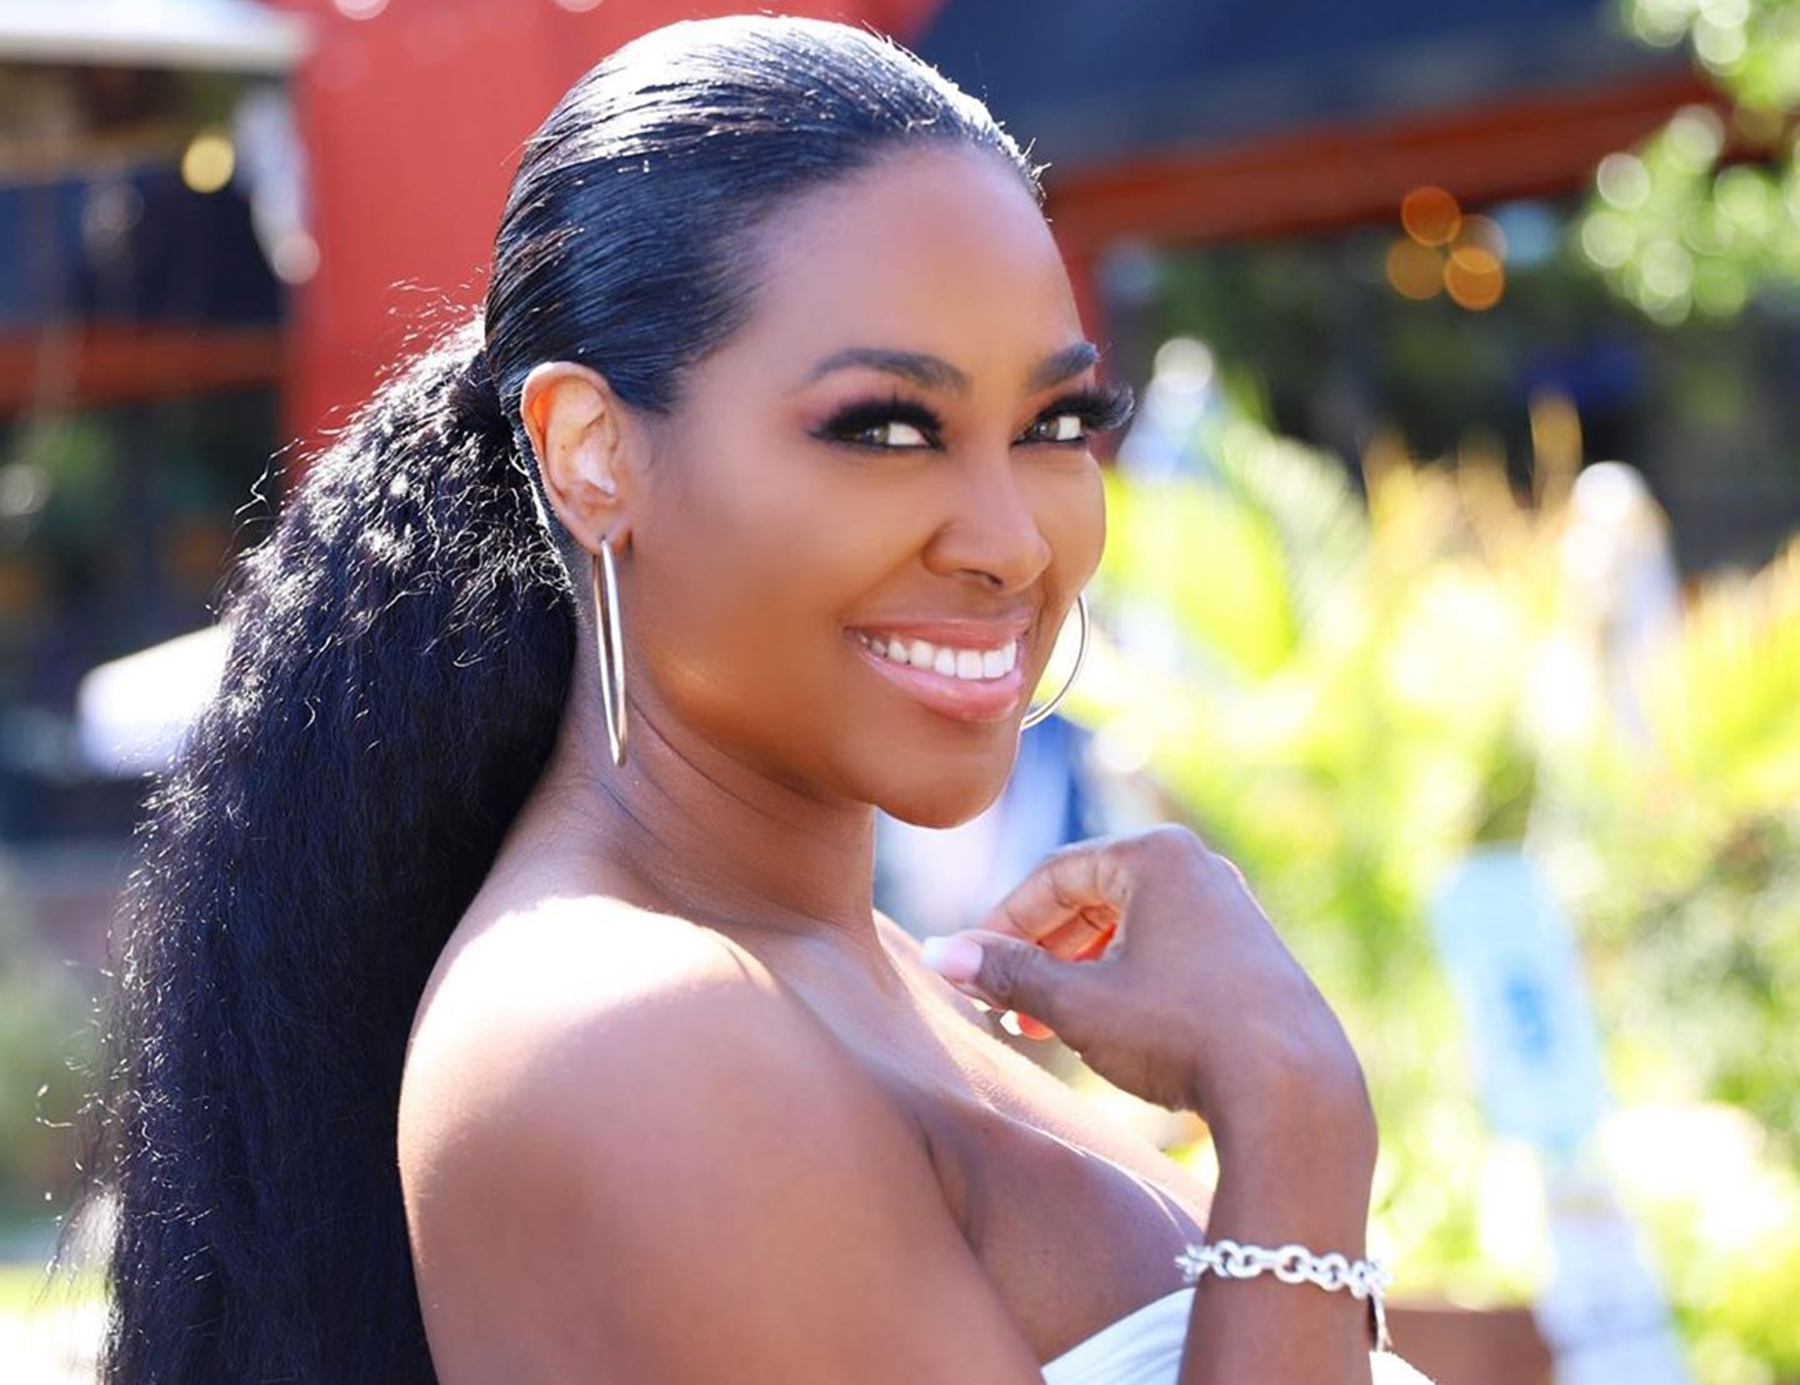 """kenya-moore-reminds-everyone-she-is-a-beauty-queen-in-new-photos-and-throws-shade-at-her-haters-rhoa-fans-approve-of-the-slayage"""